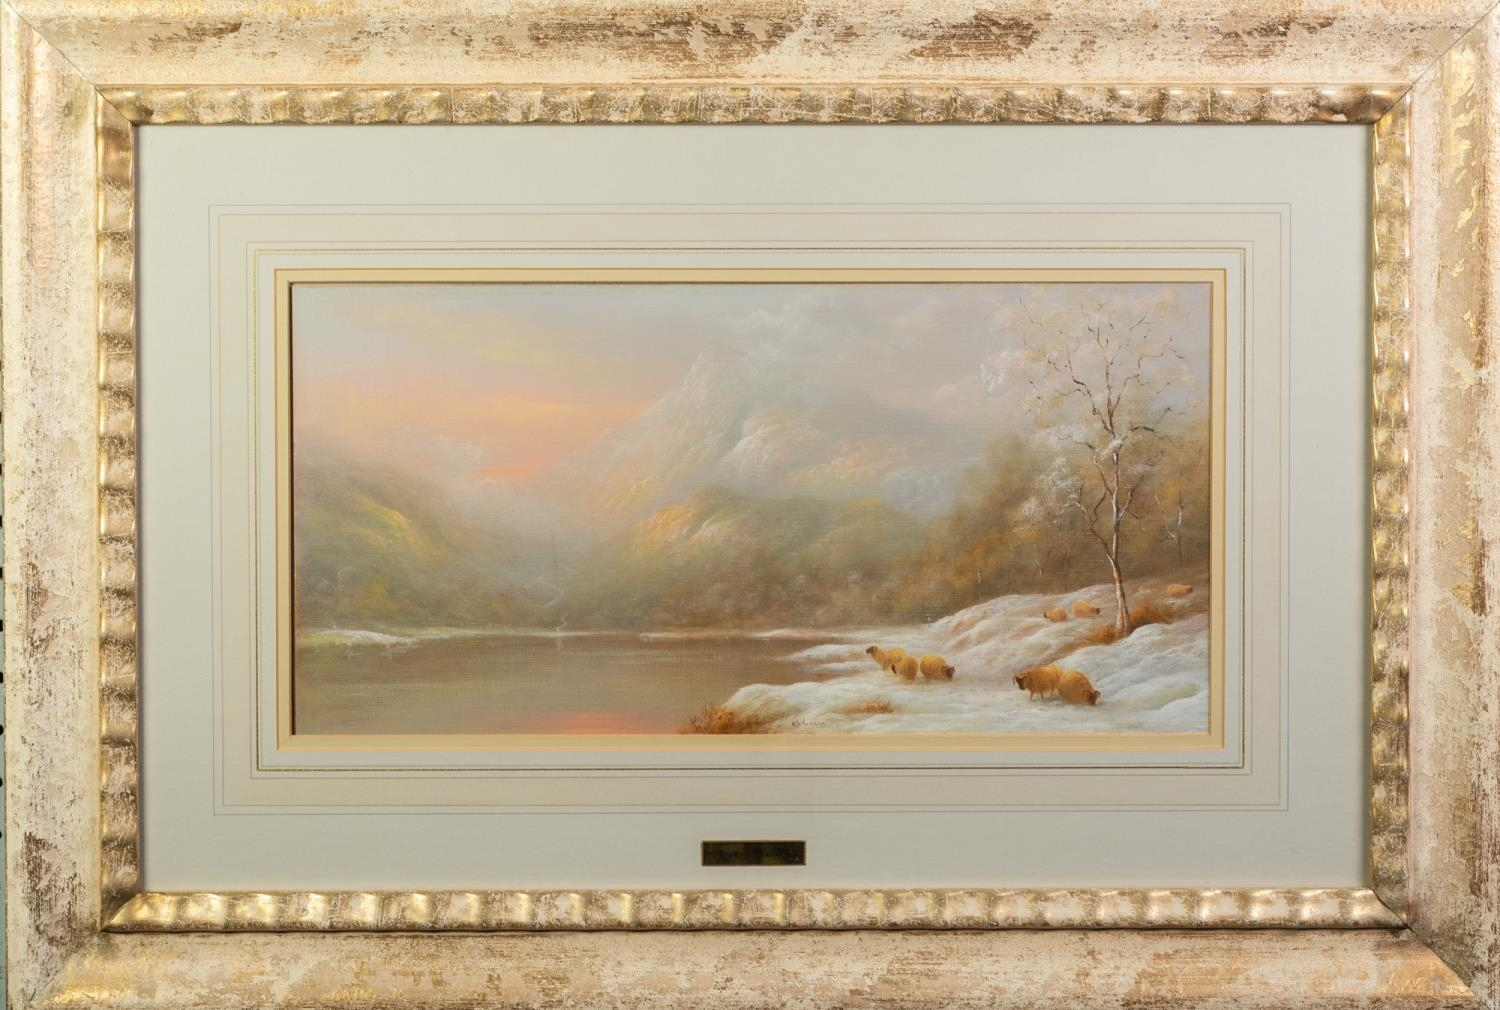 RAYMOND GILRONAN (b. 1950) OIL ON BOARD A Scottish loch in winter with grazing sheep Signed lower - Image 2 of 2